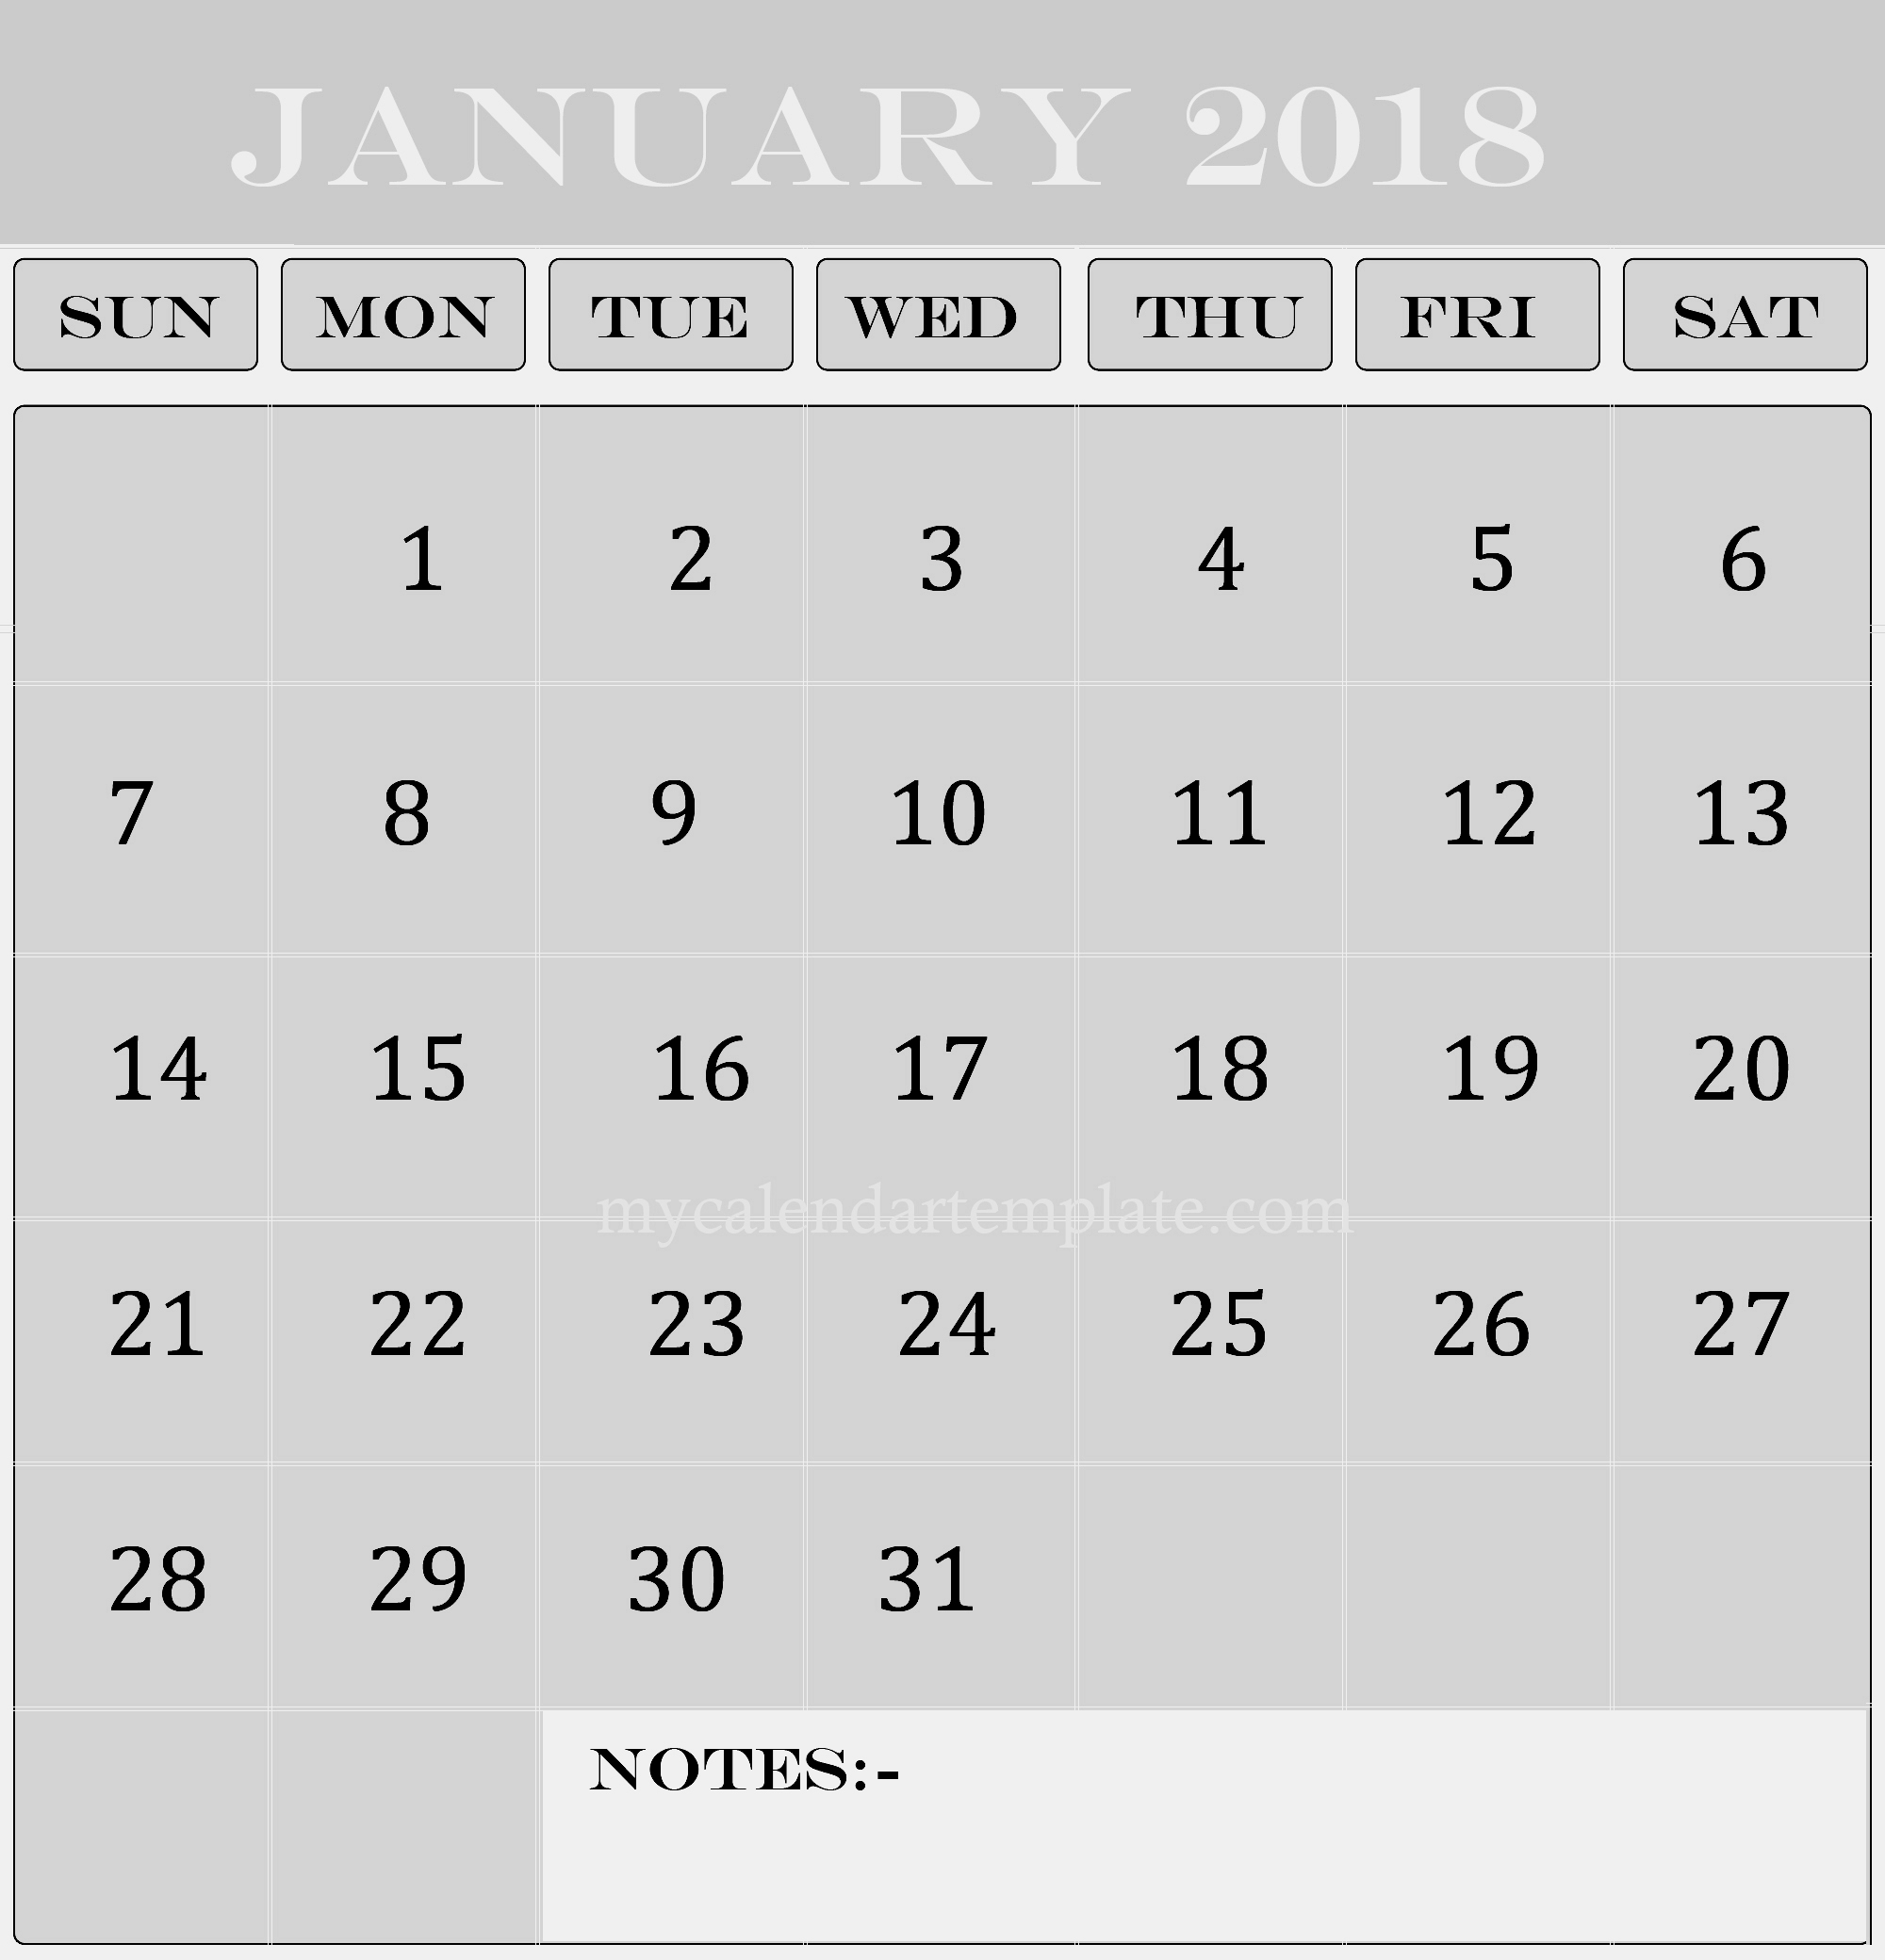 Calendar Download : Monthly calendar printable for free download india